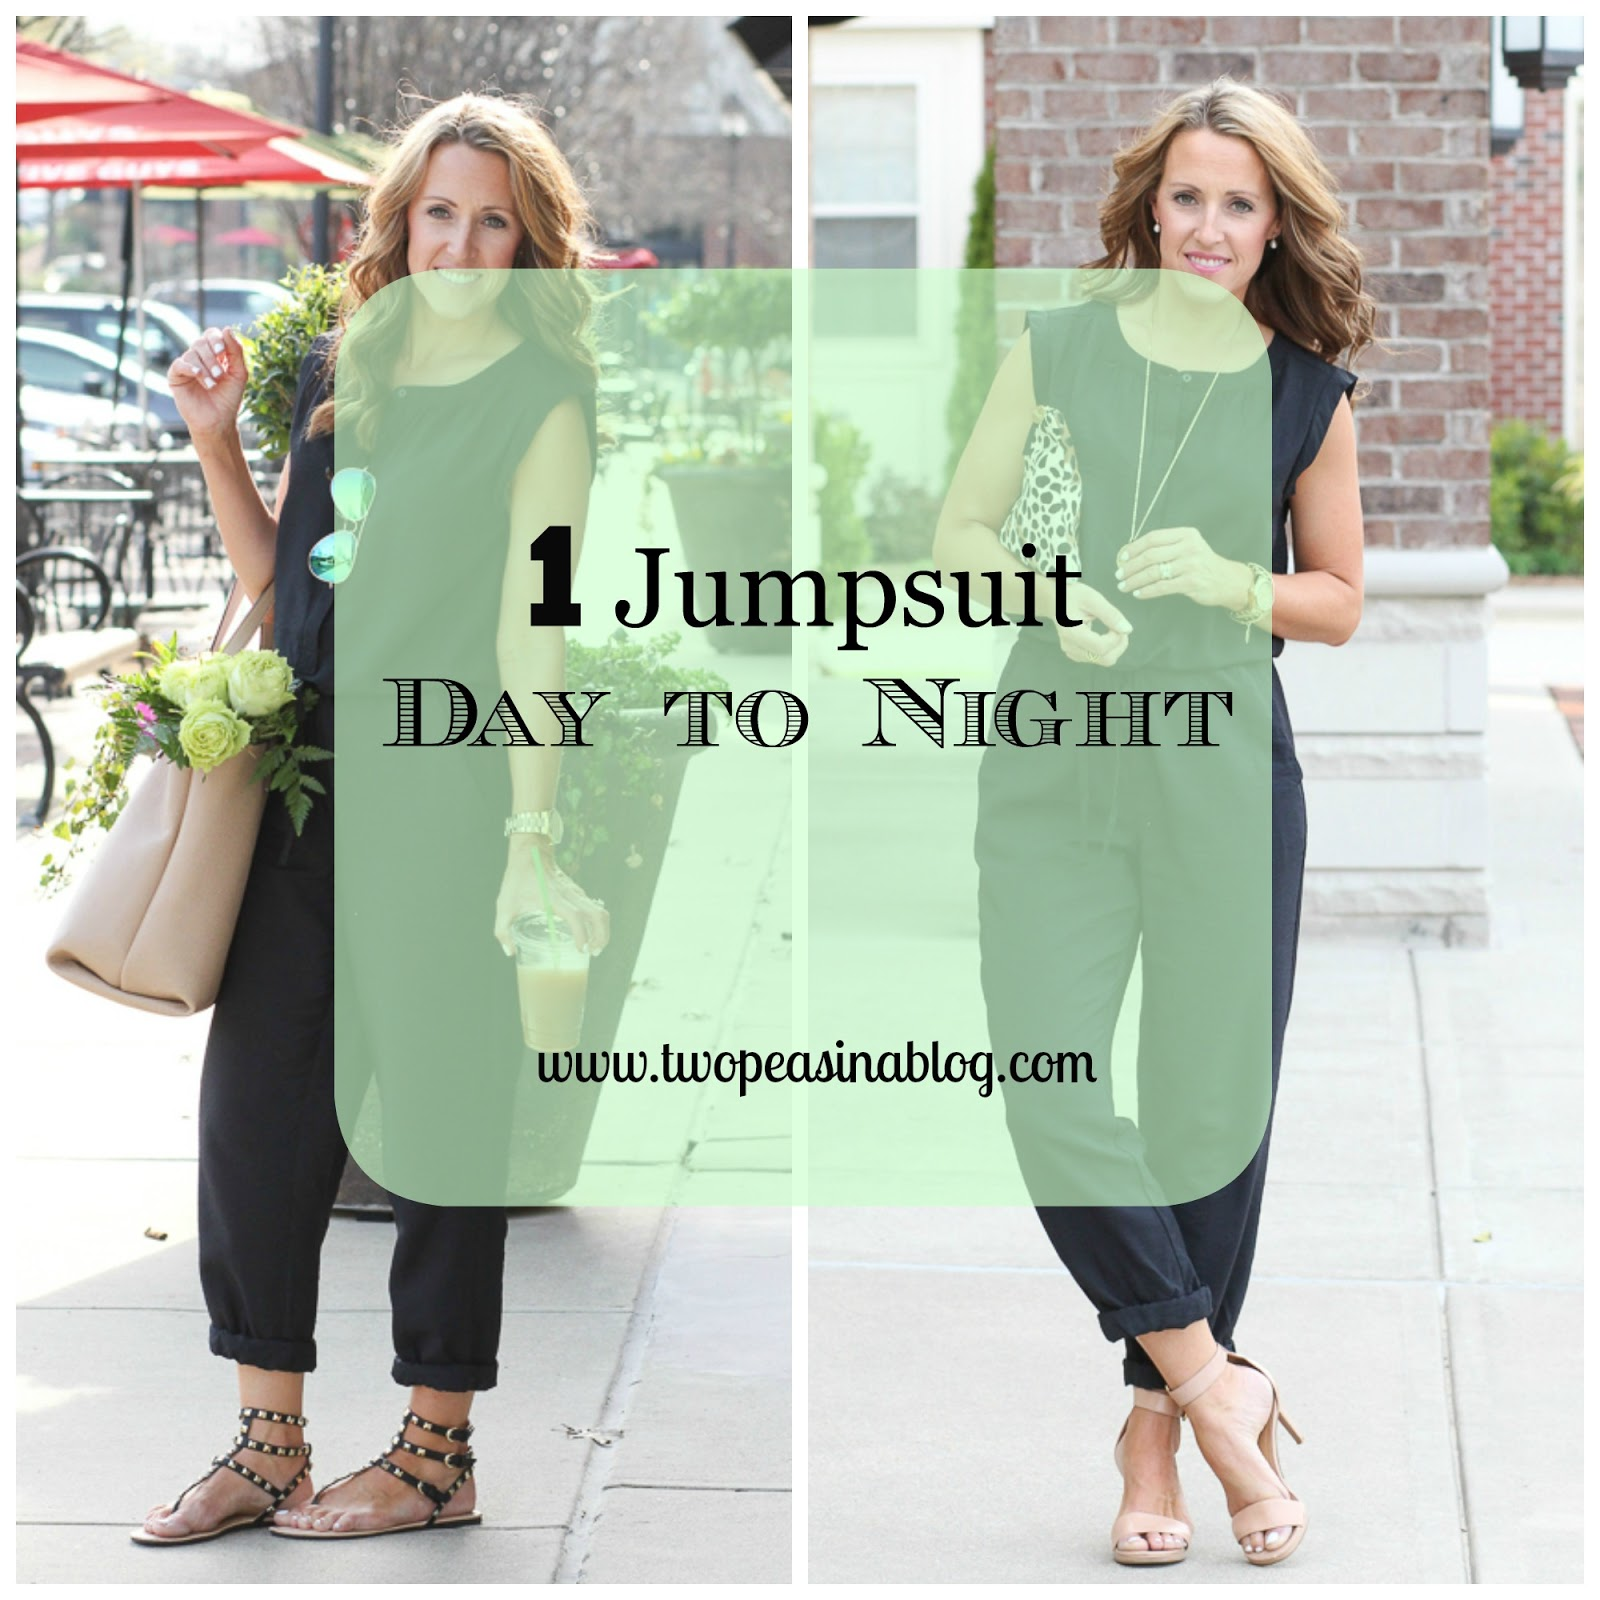 da09e088d6aa Two Peas in a Blog  Jumpsuit from Day to Night